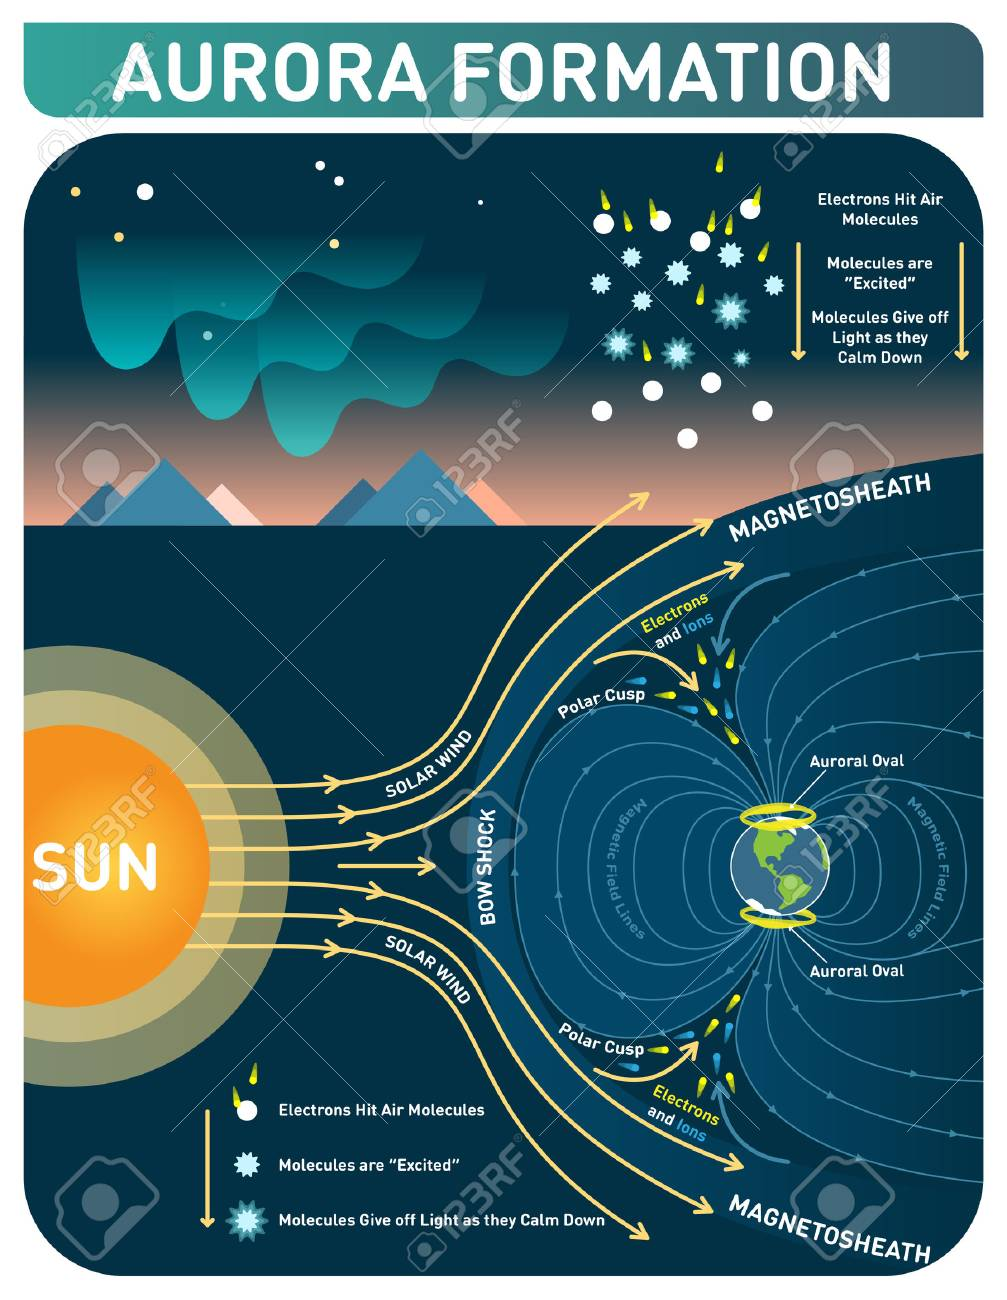 Aurora formation scientific cosmology infopgraphic poster. Solar wind and earth's magnetic field makes electrons to hit air molecules and molecules give off light as they calm down. - 98088489